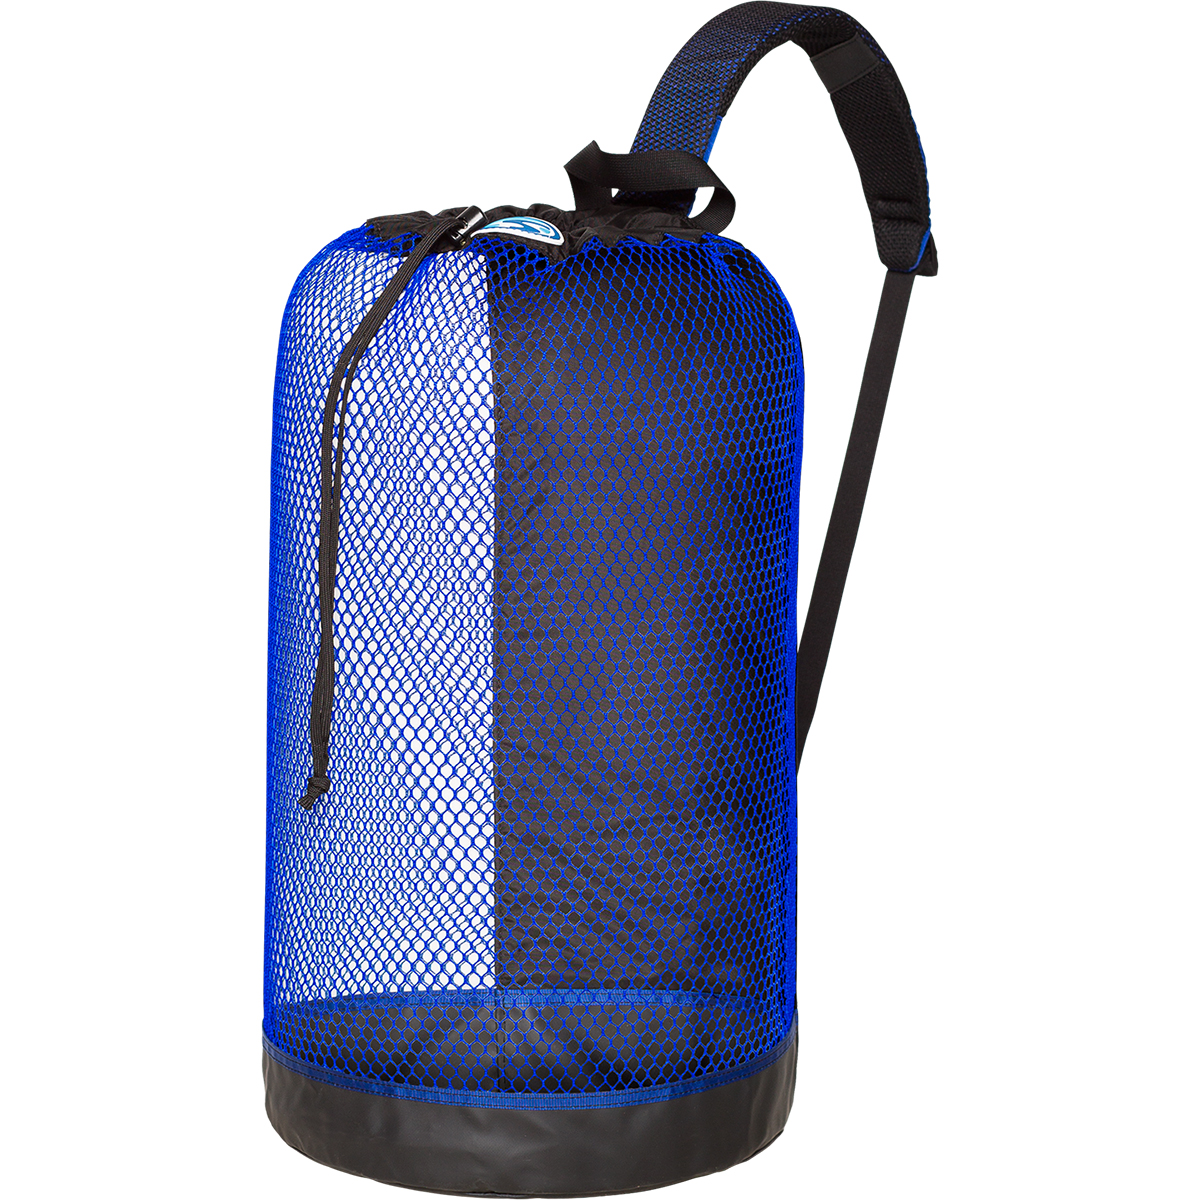 Bvi Mesh Backpack